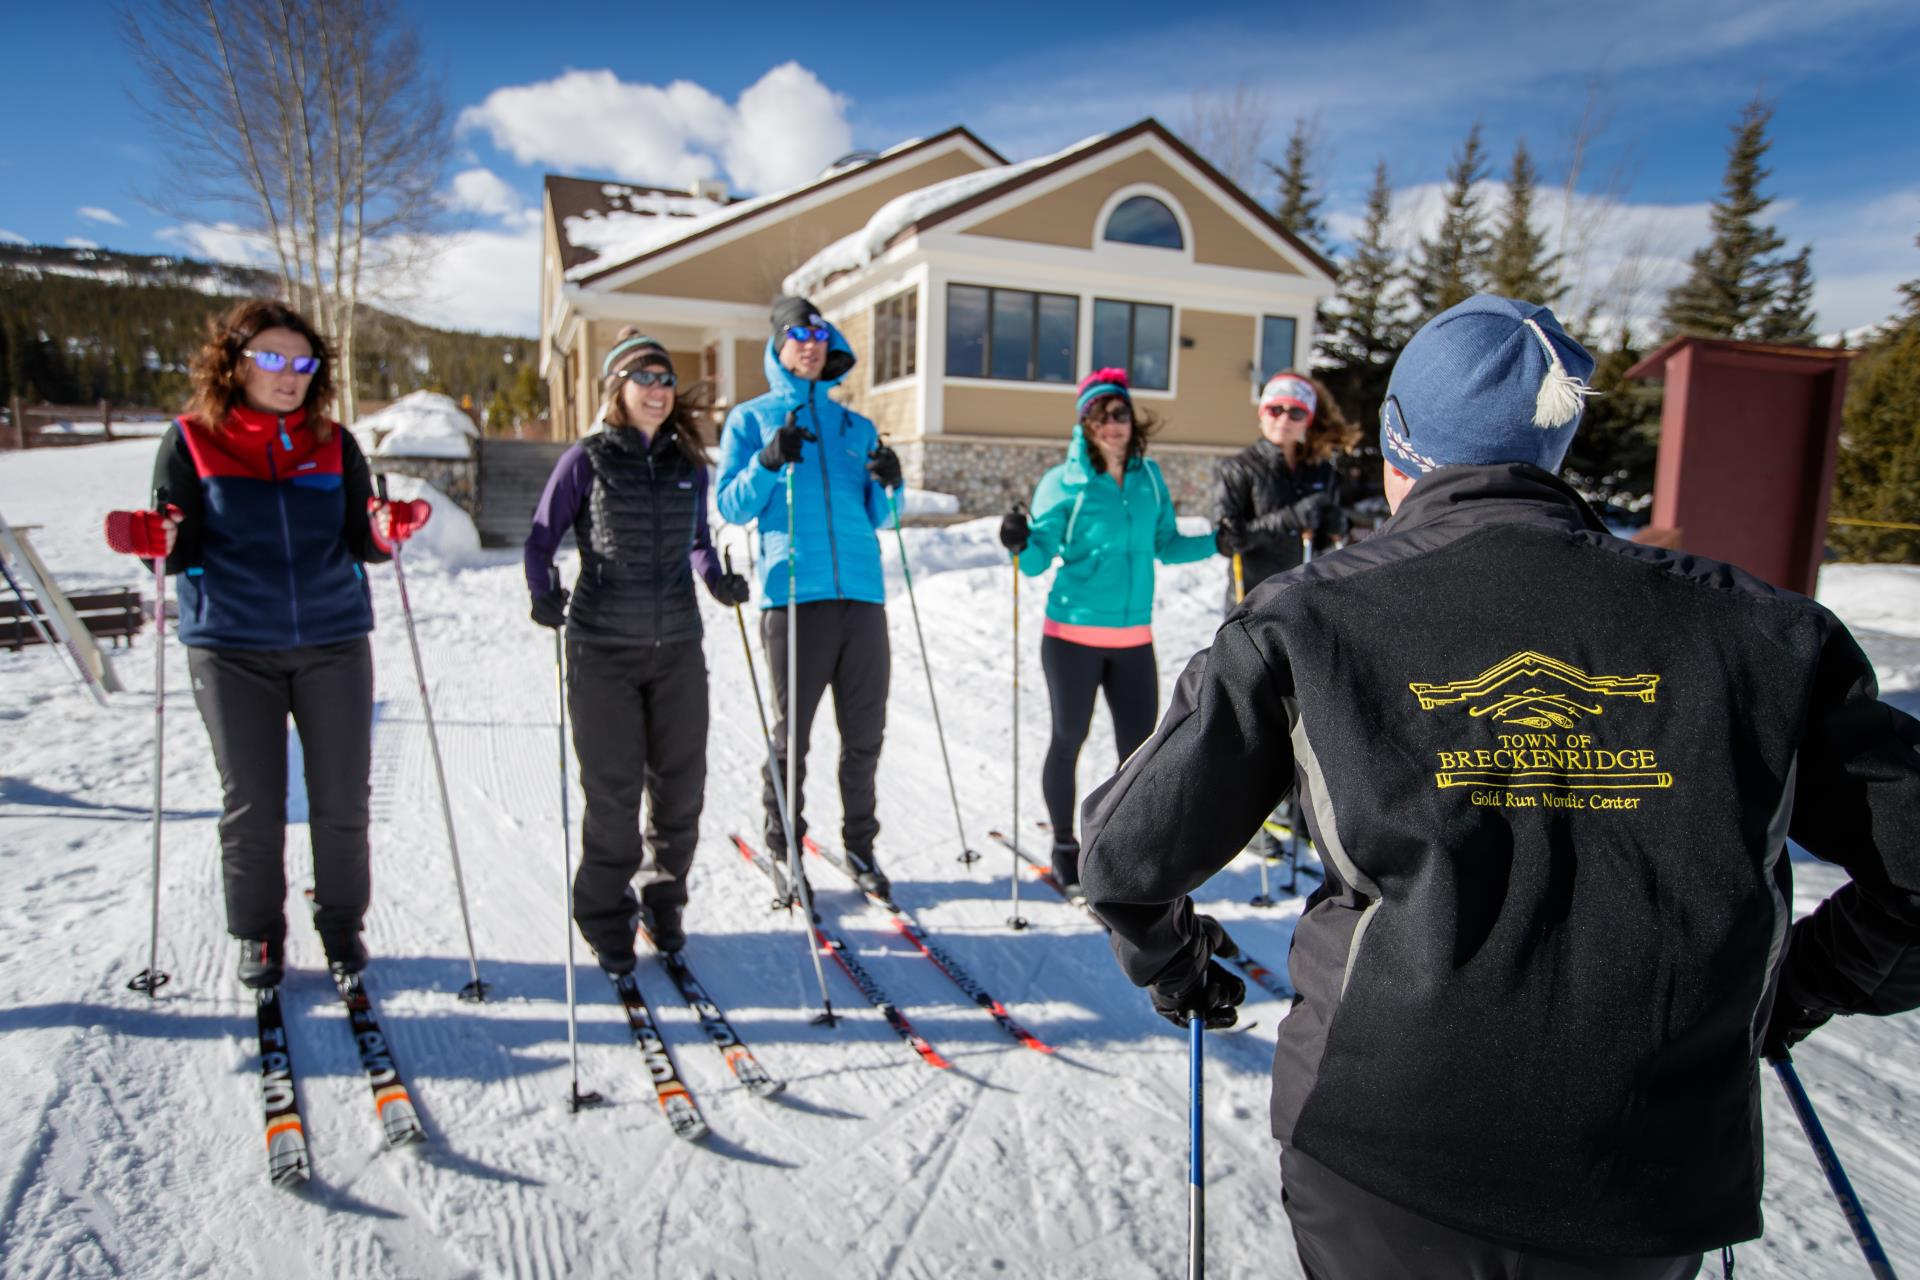 Cross-country skiing instructor giving lesson to 5 skiiers